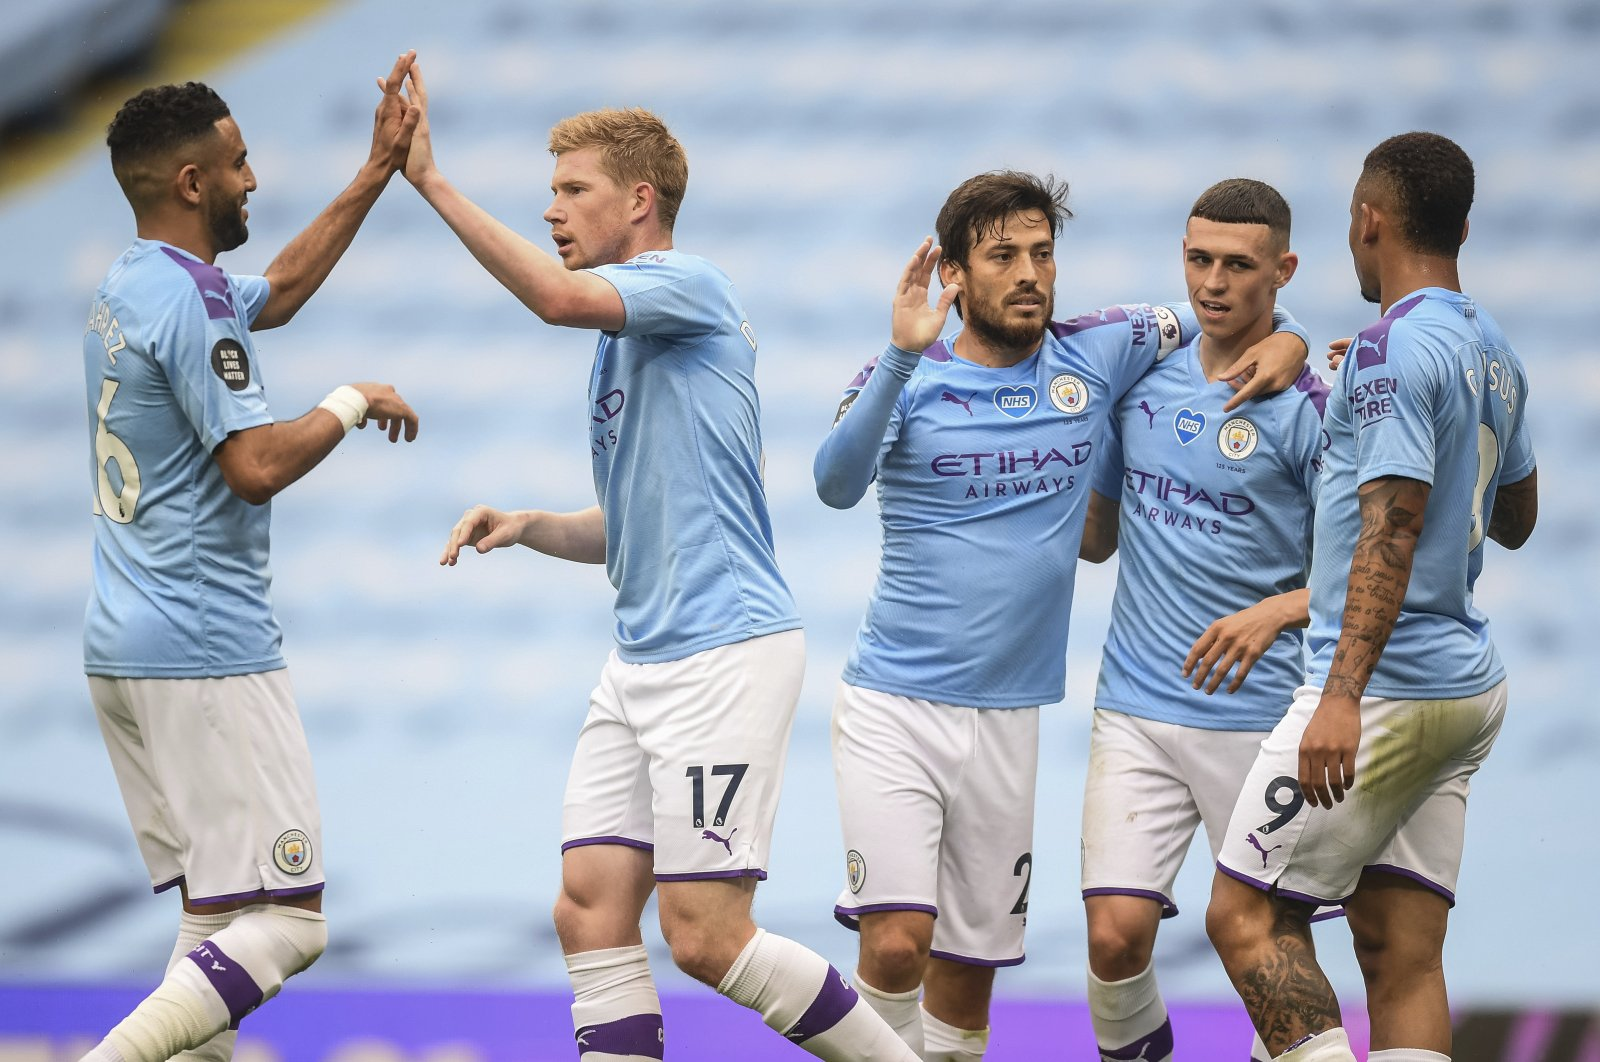 Manchester City players celebrate after scoring their second goal during the English Premier League soccer match between Manchester City and Newcastle at the Ethiad Stadium in Manchester, England, Wednesday, July 8, 2020. (Pool via AP)